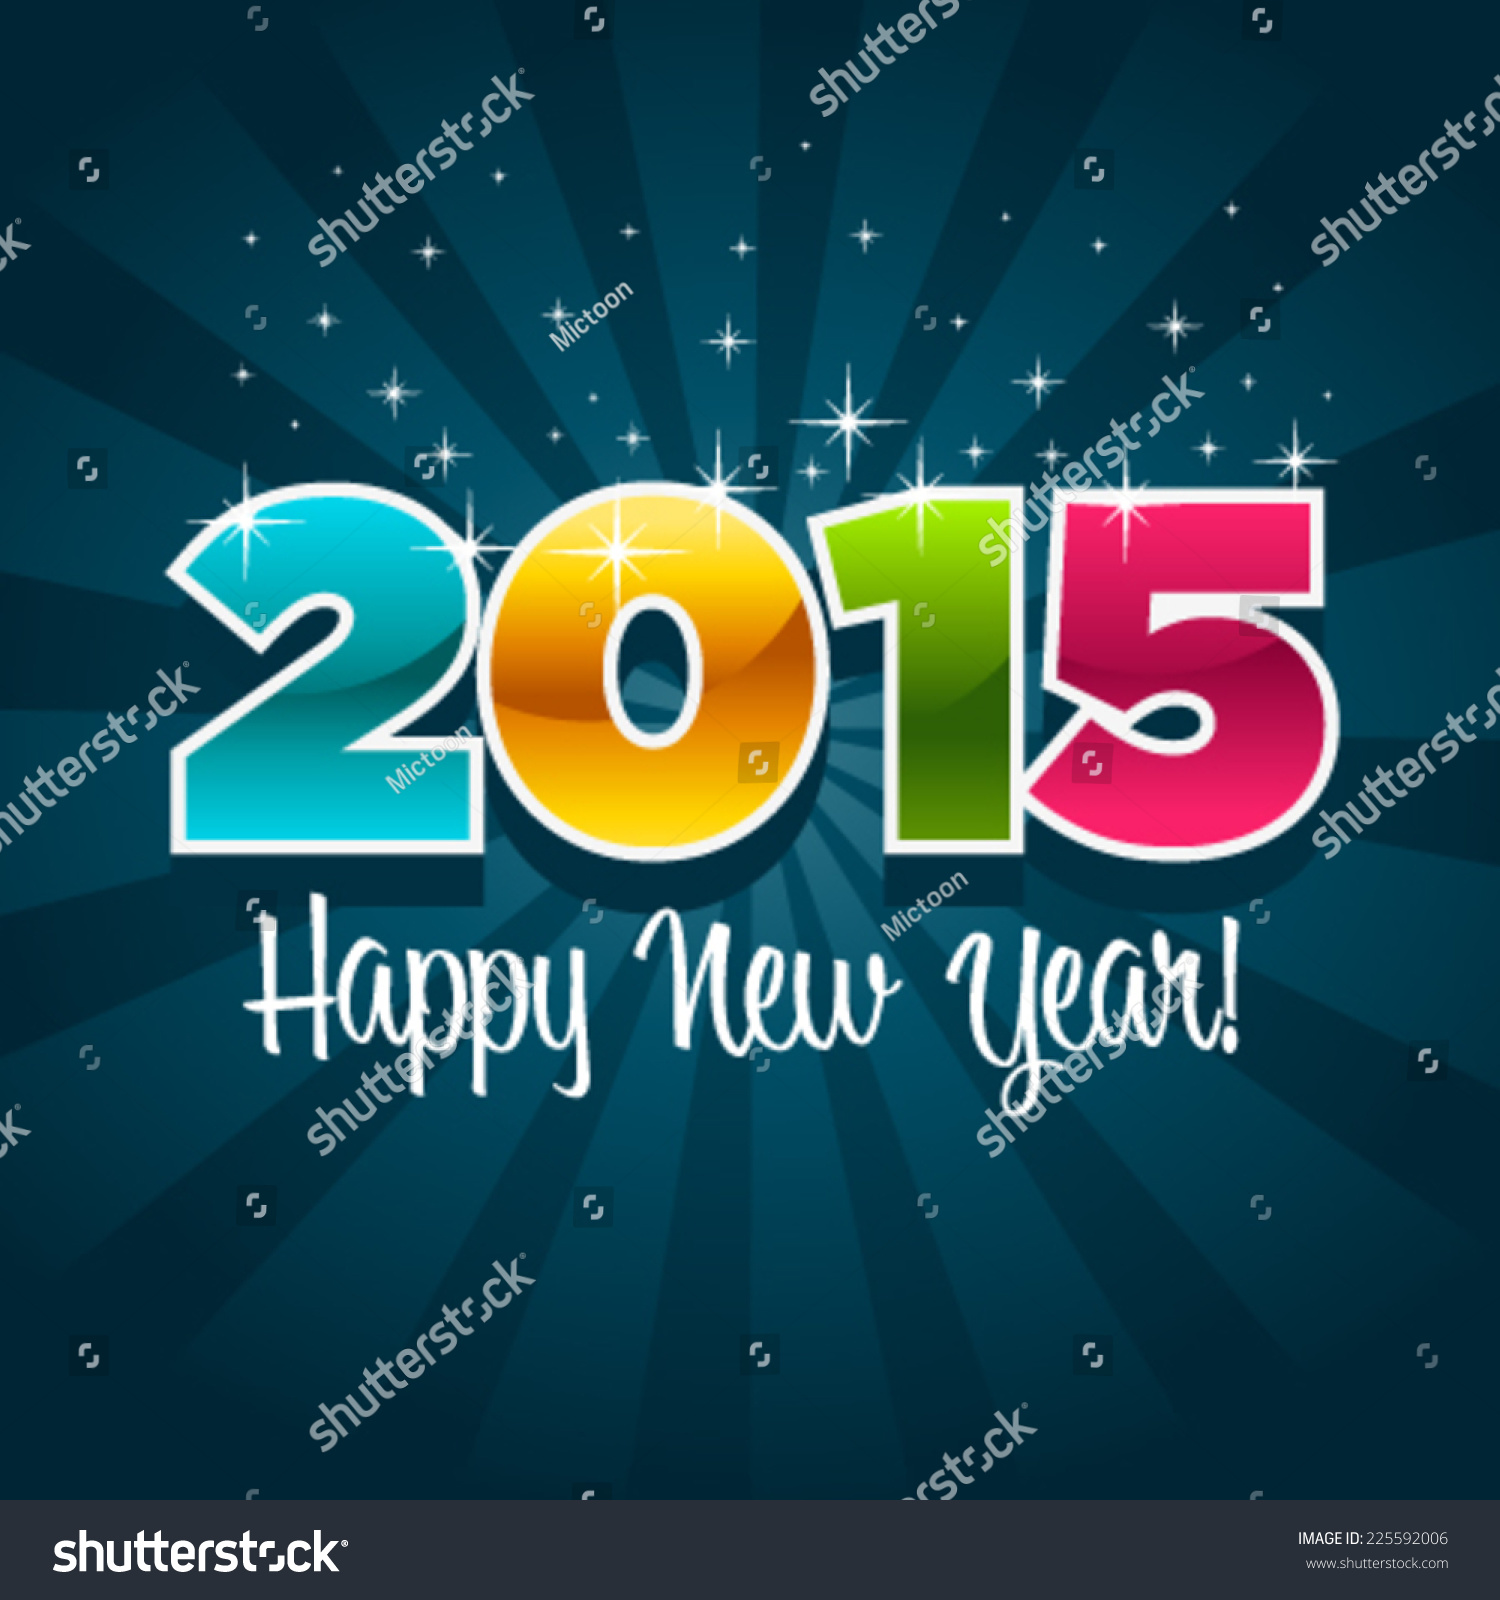 Happy New Year 2015 Greeting Card Stock Vector 225592006 Shutterstock